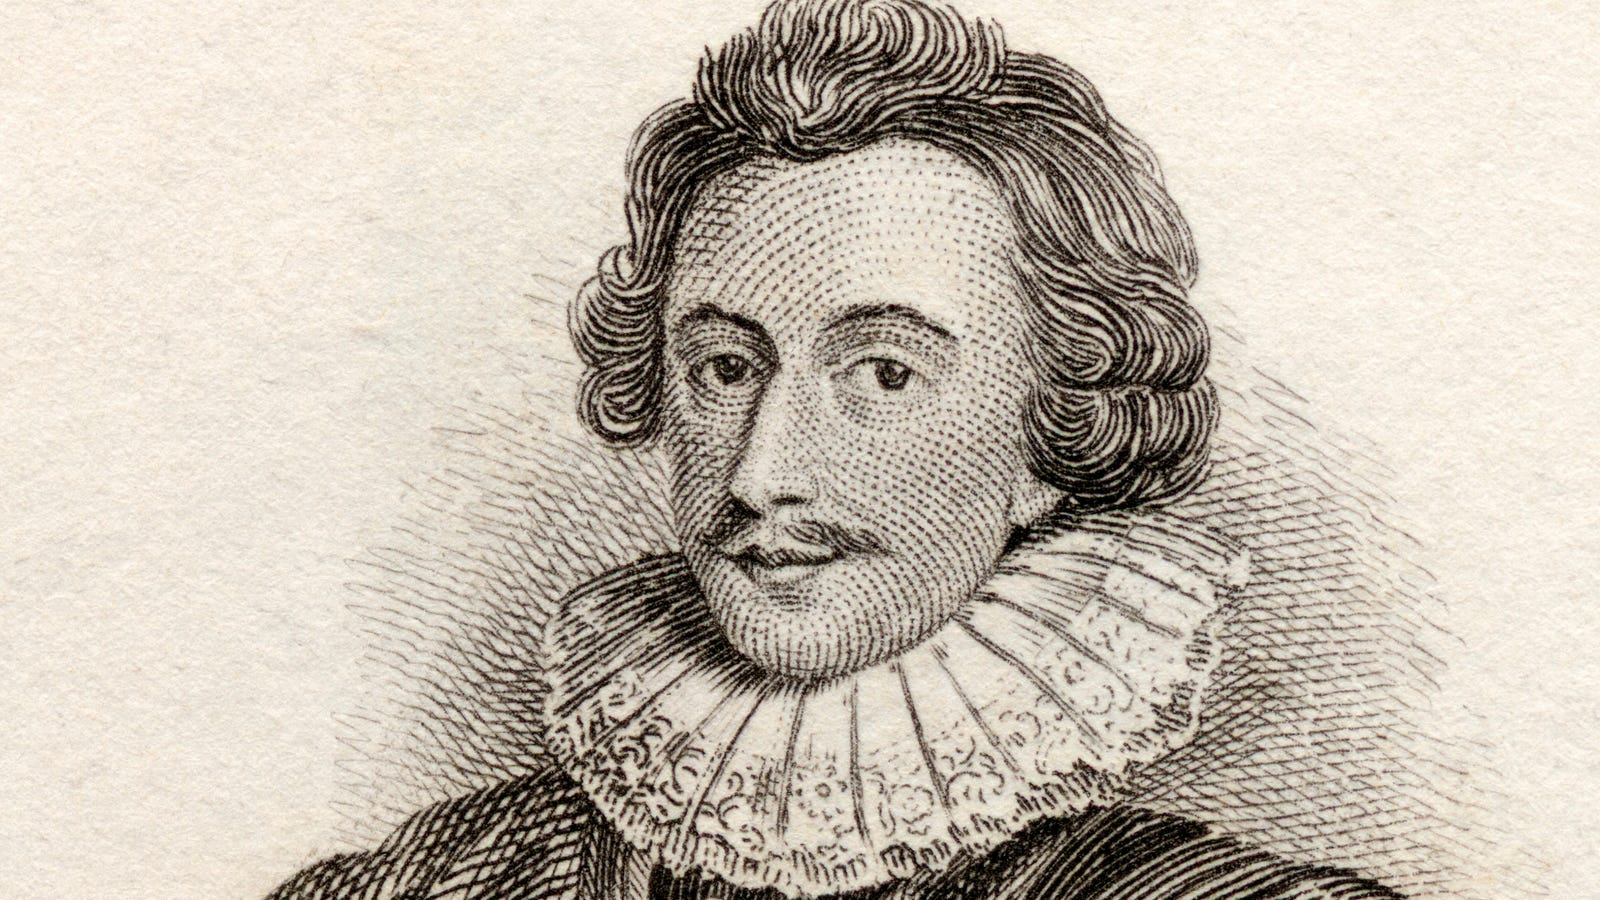 Meet the English nobleman who may have been King James